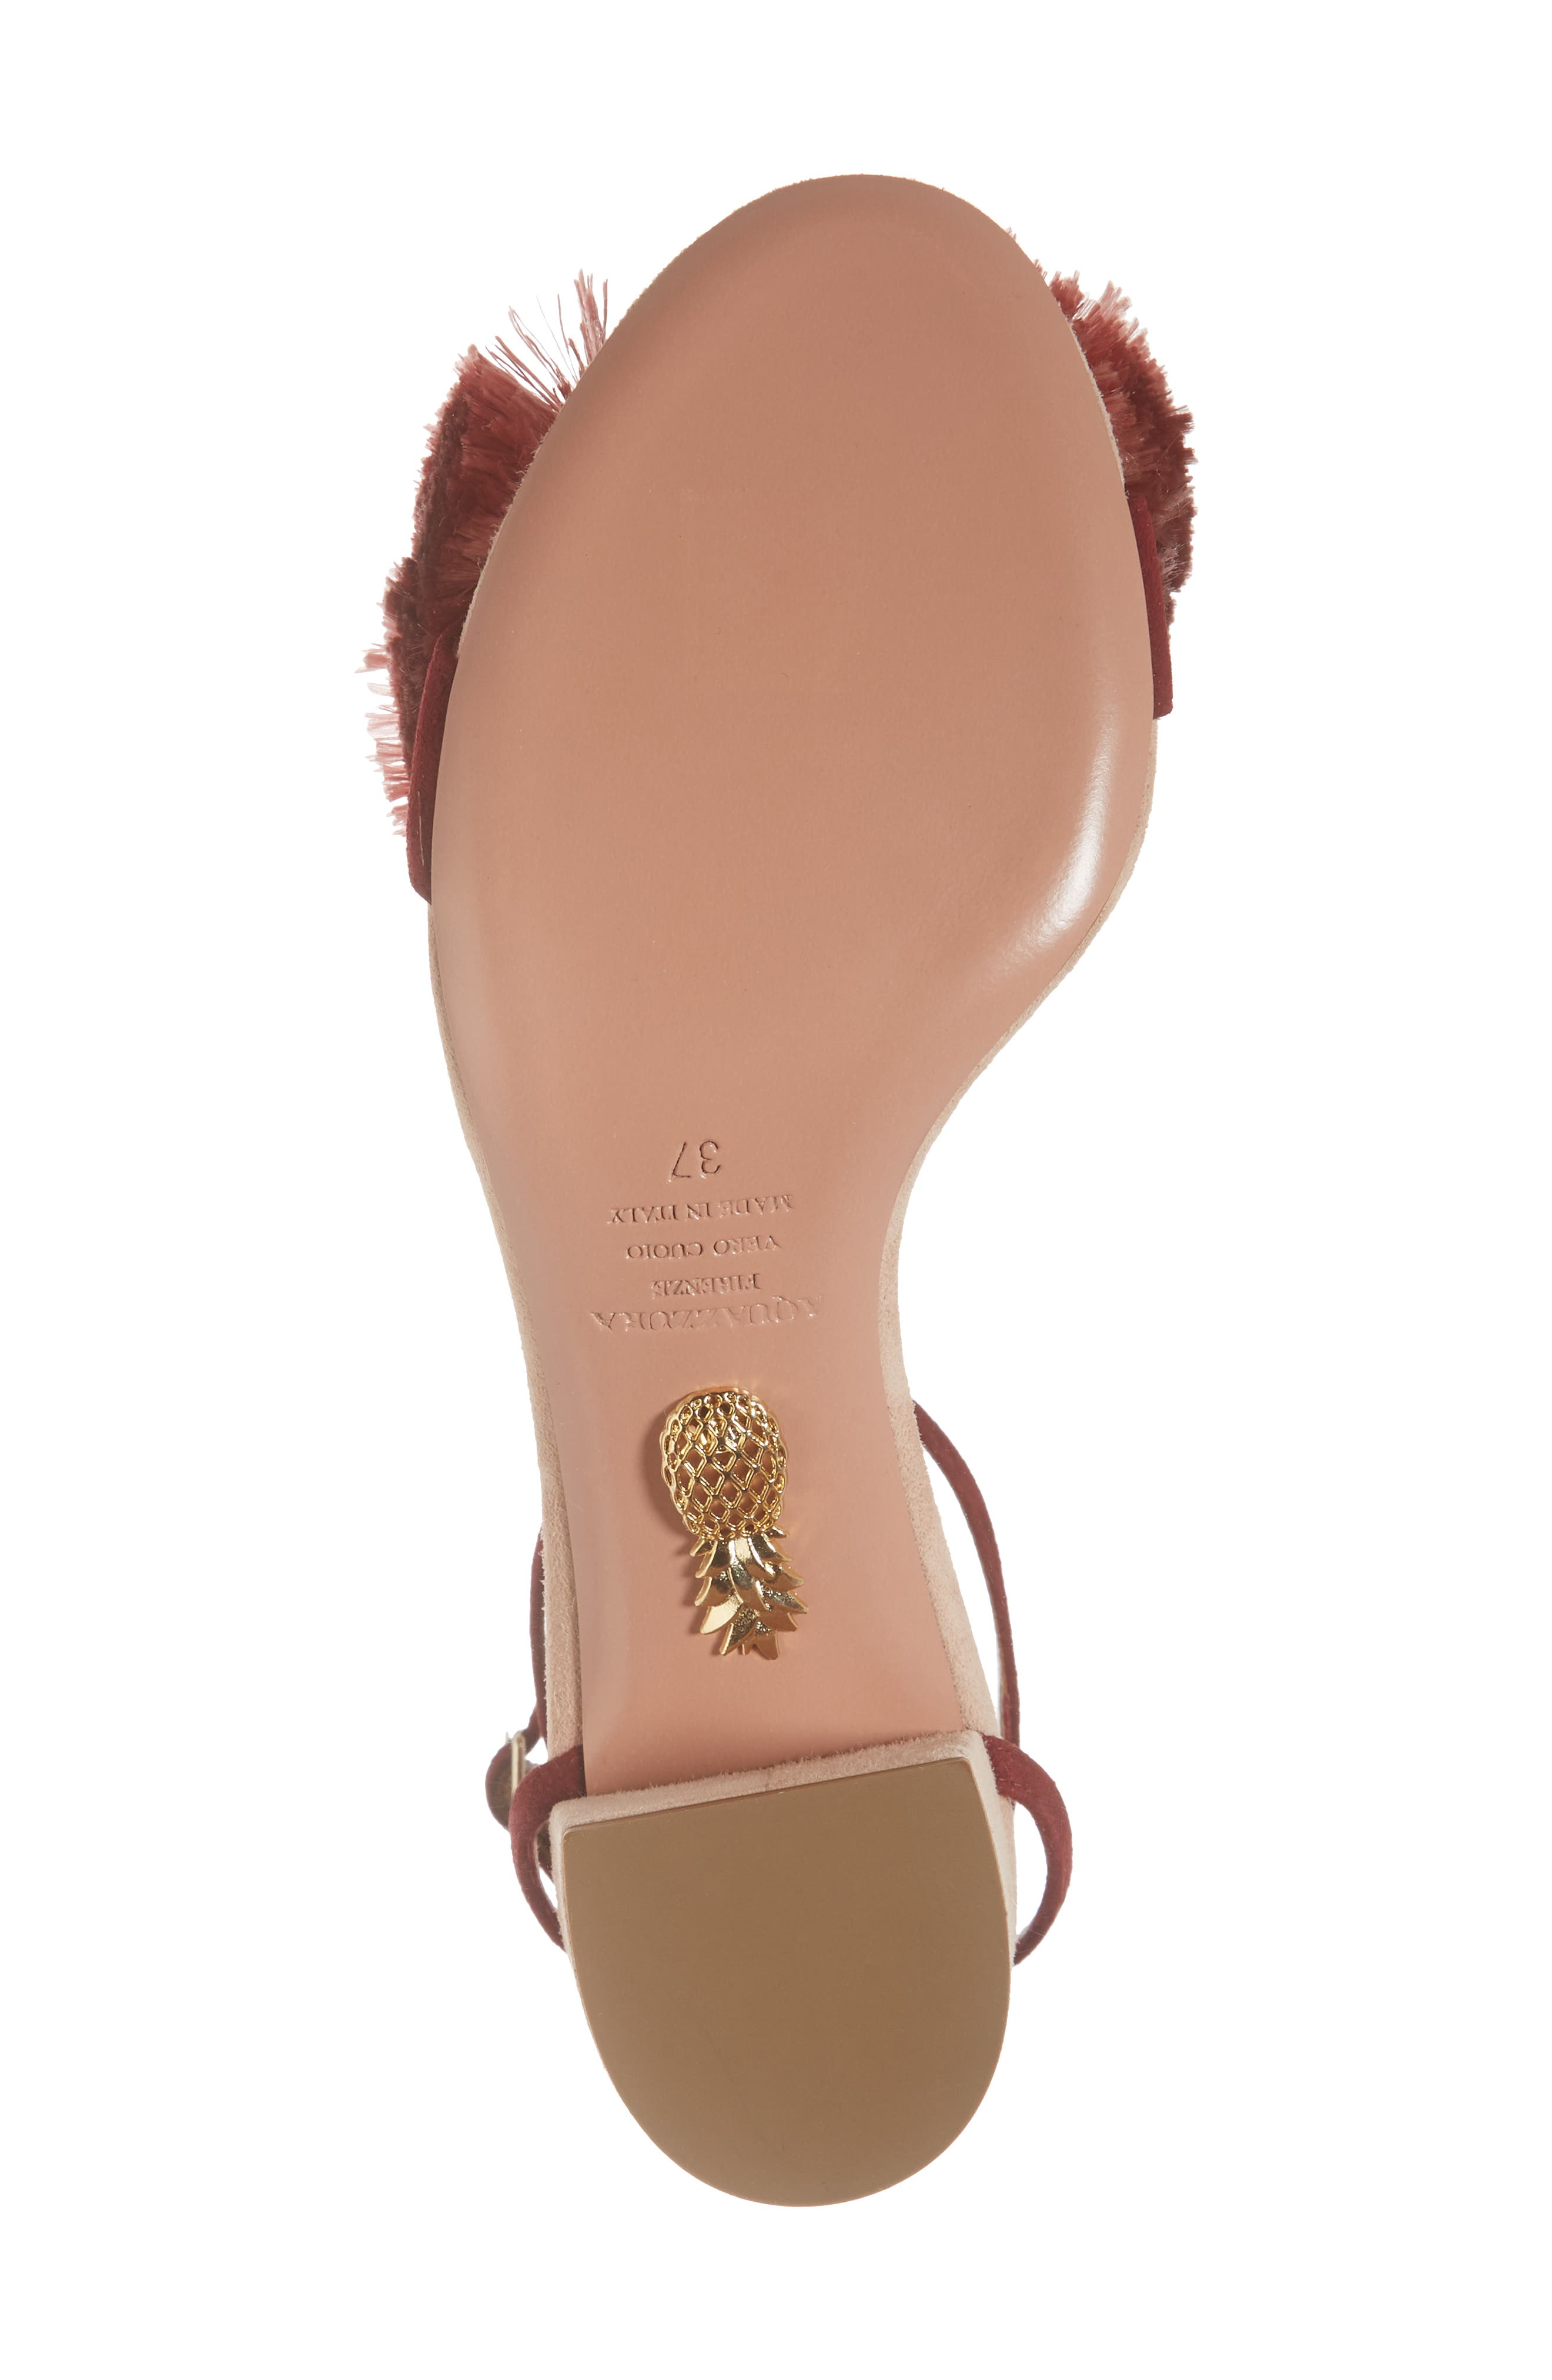 Lotus Blossom Sandal,                             Alternate thumbnail 6, color,                             601